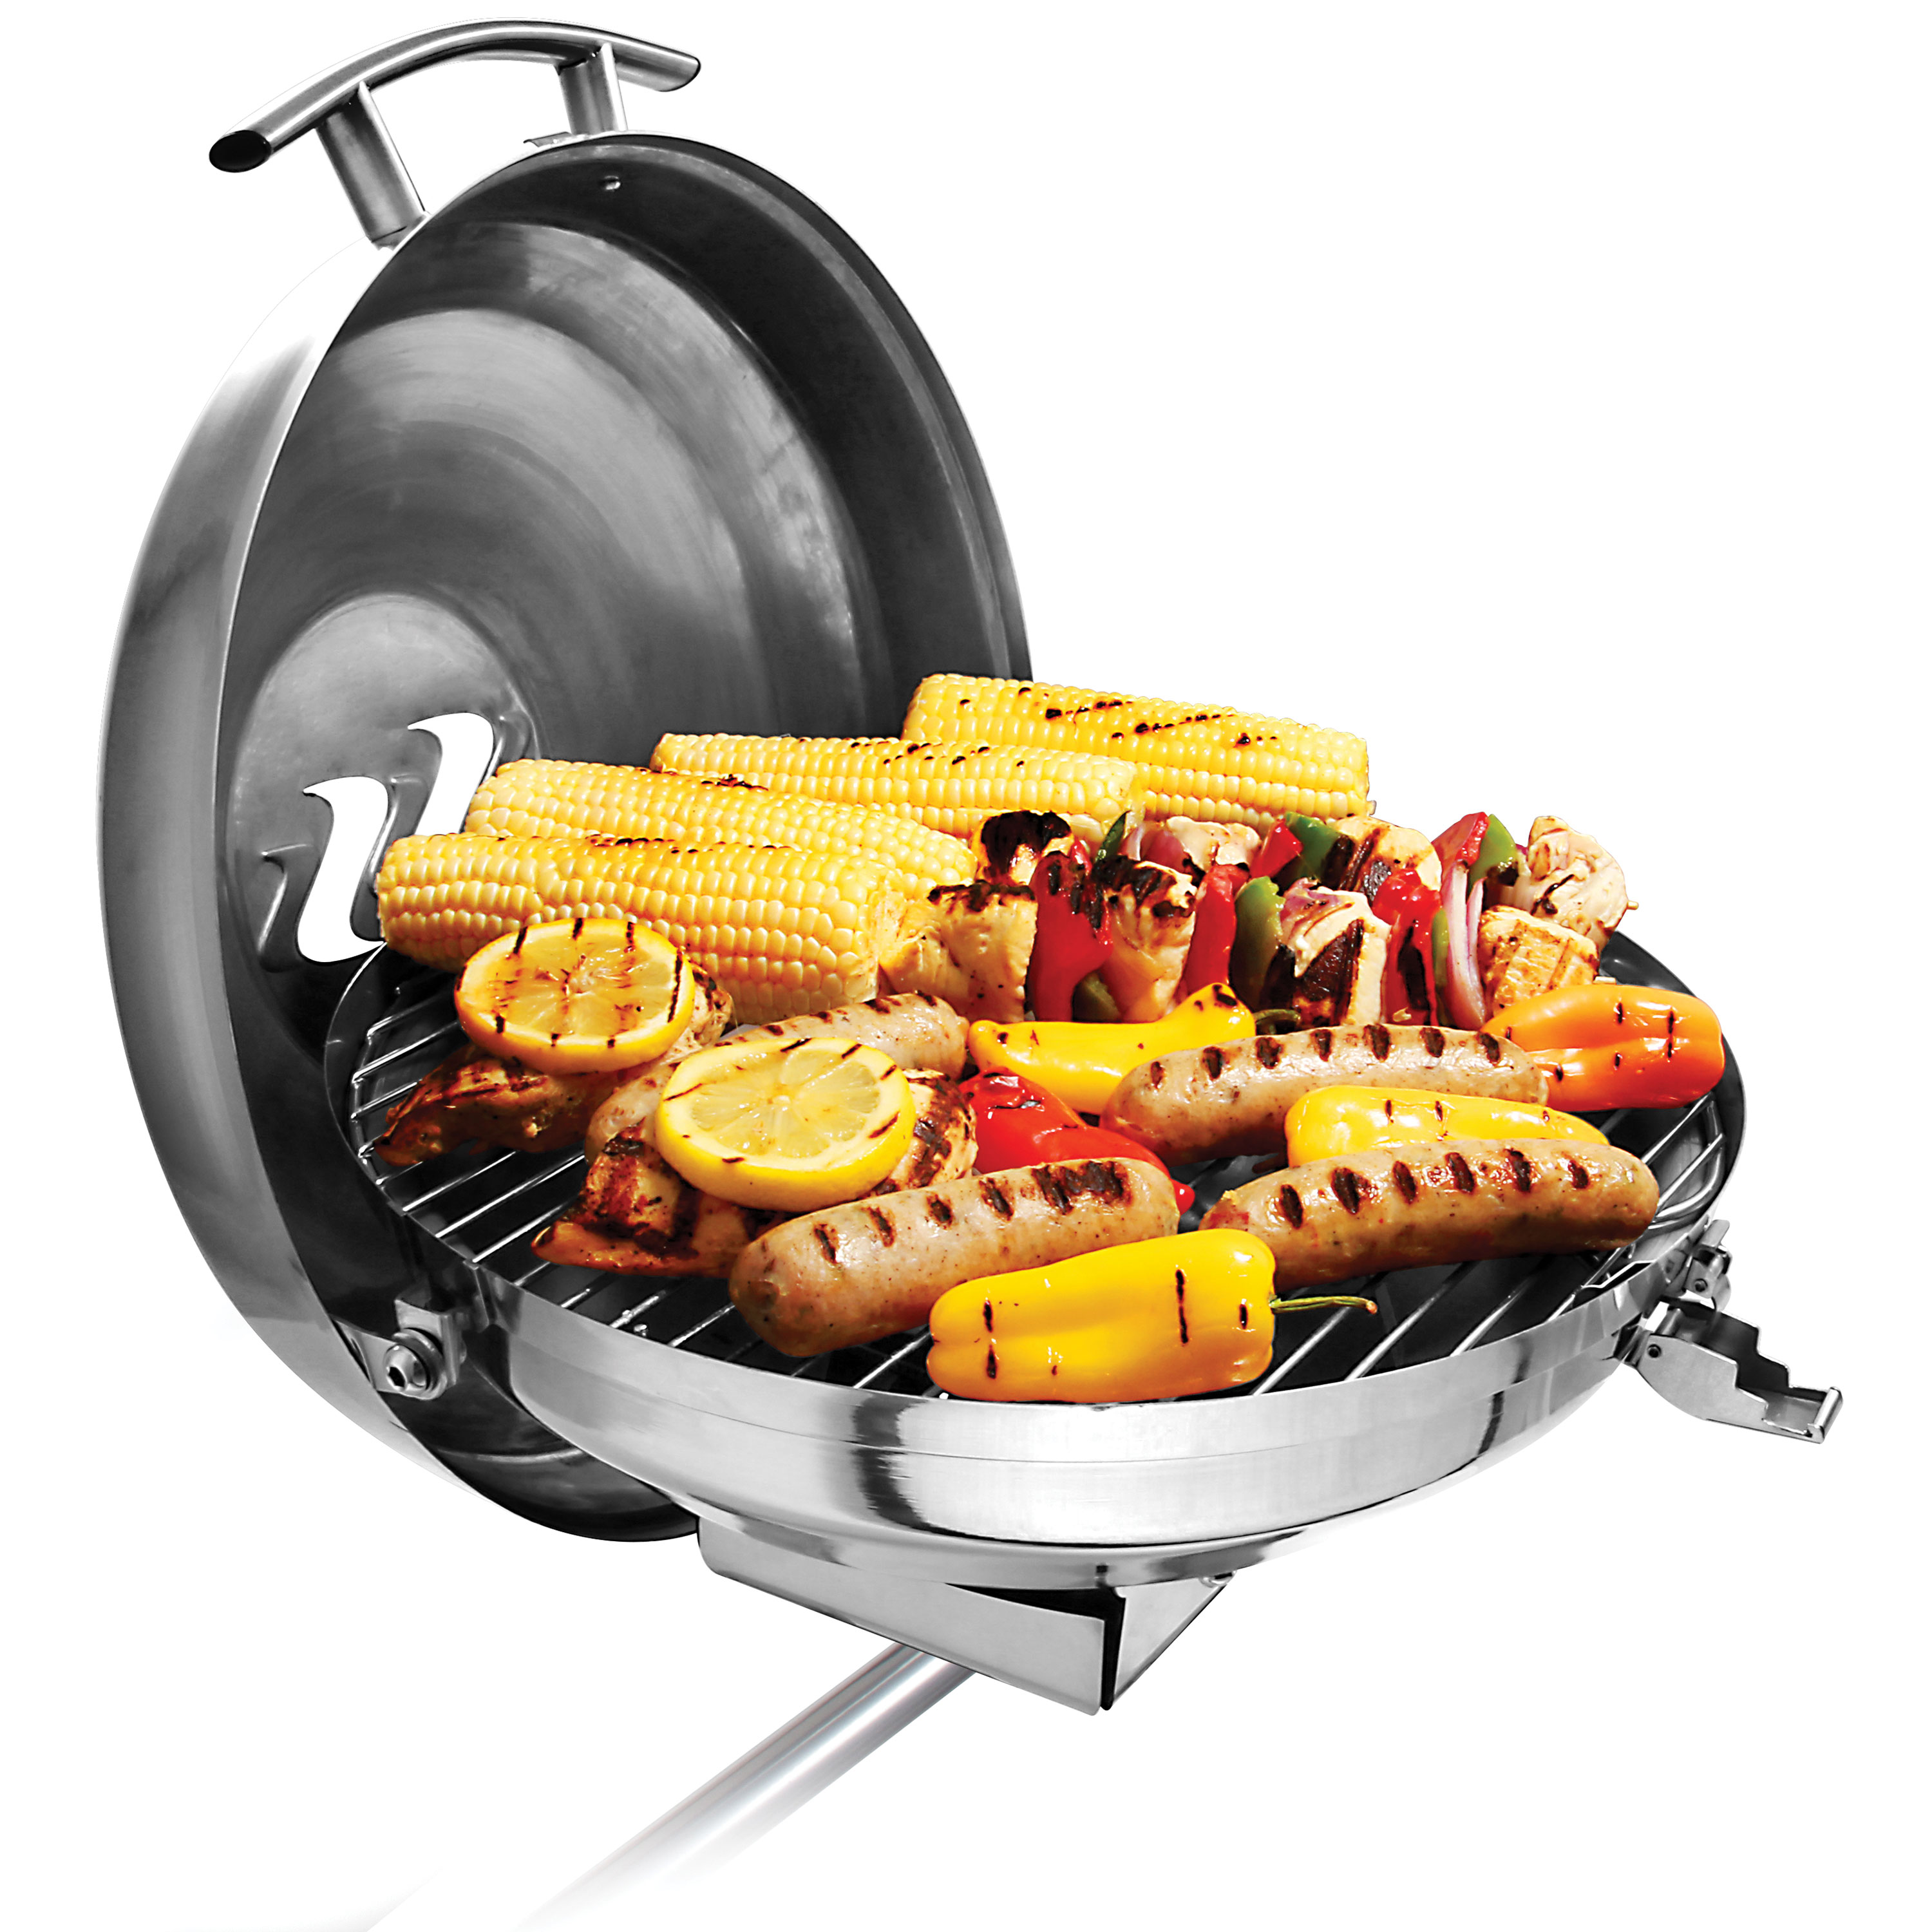 "Kuuma Premium Stainless Steel Kettle Gas Grill by Camco -Compact Portable Size Perfect for Boats, Tailgating and More - Stow N Go 160"" (58102)"